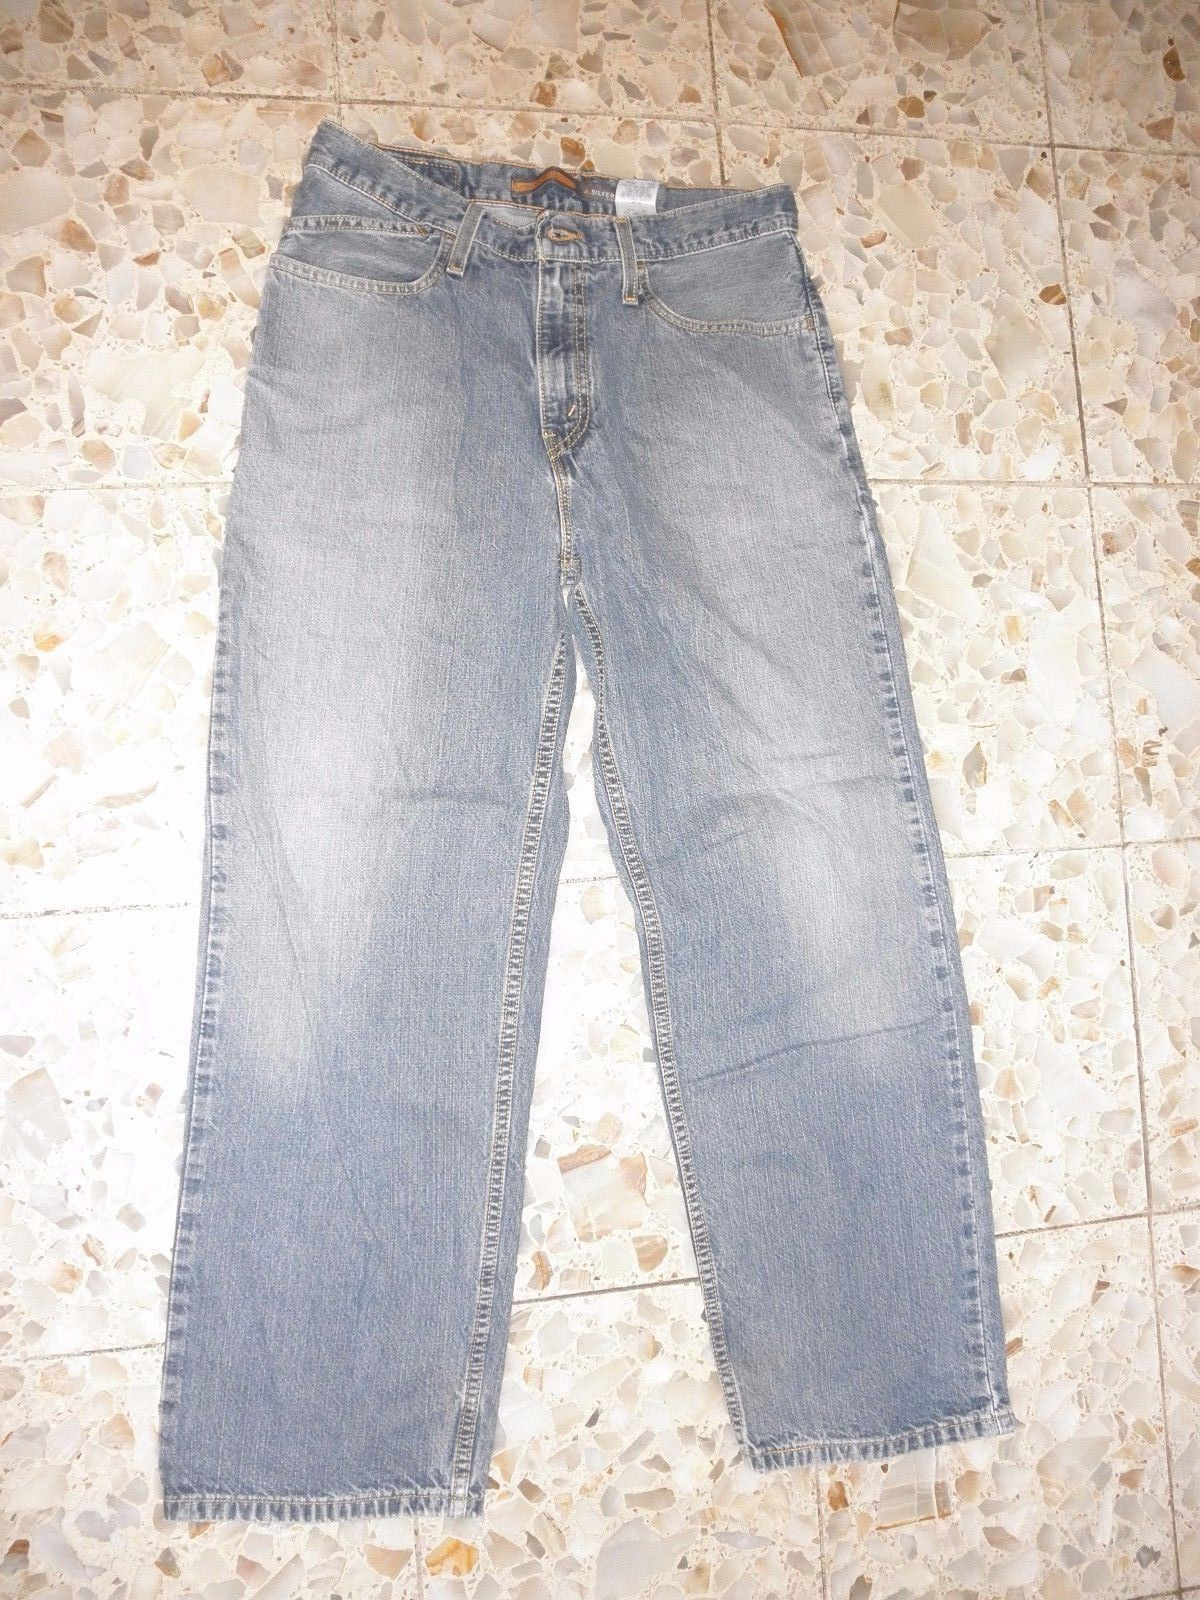 Levi's Silvertab  Loose and Low Blue Jeans 30x30 Pants 100% Cotton Silver Tab  - $28.71